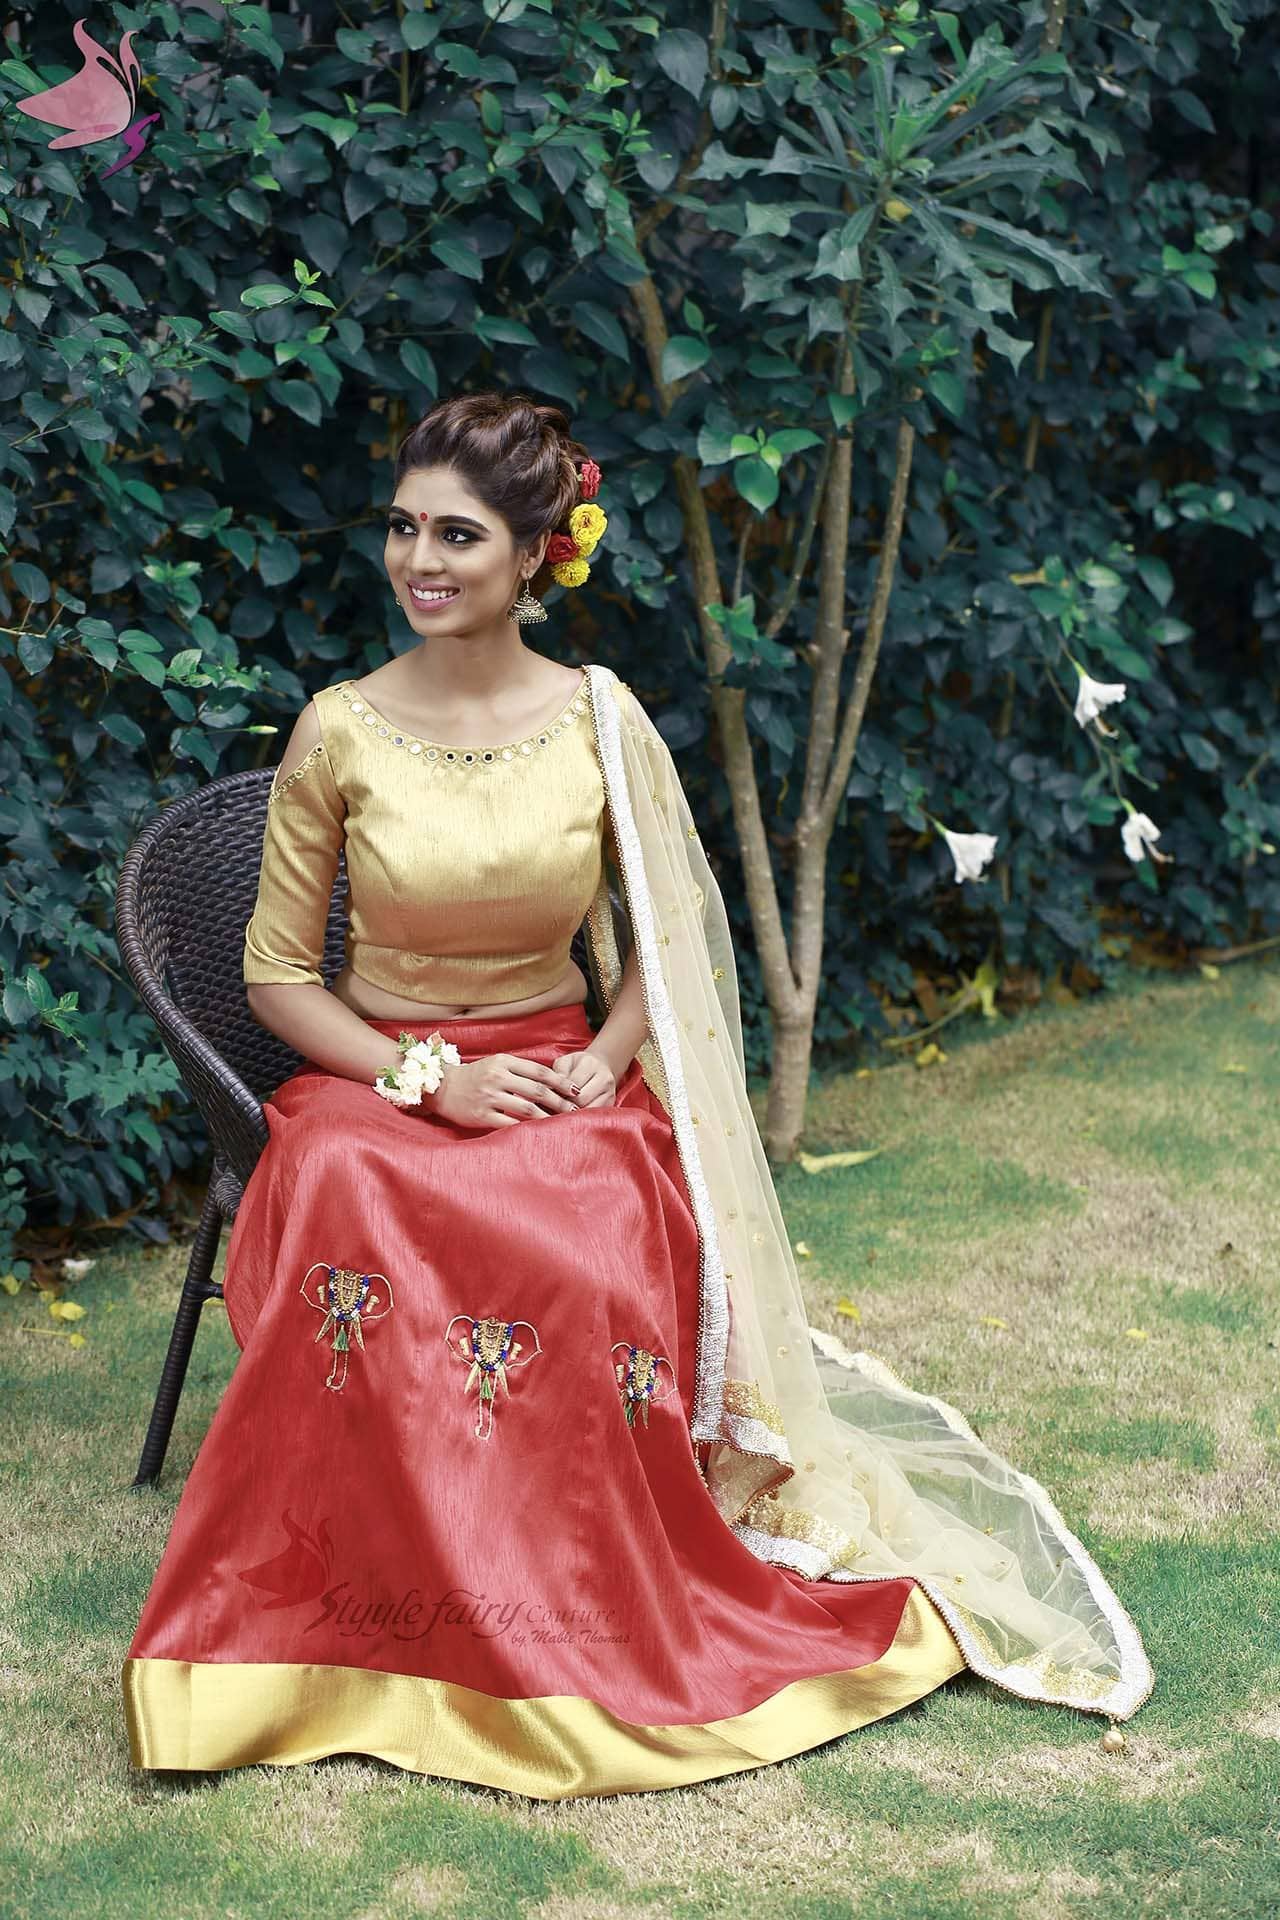 Red Kali lehenga with gold brocade blouse